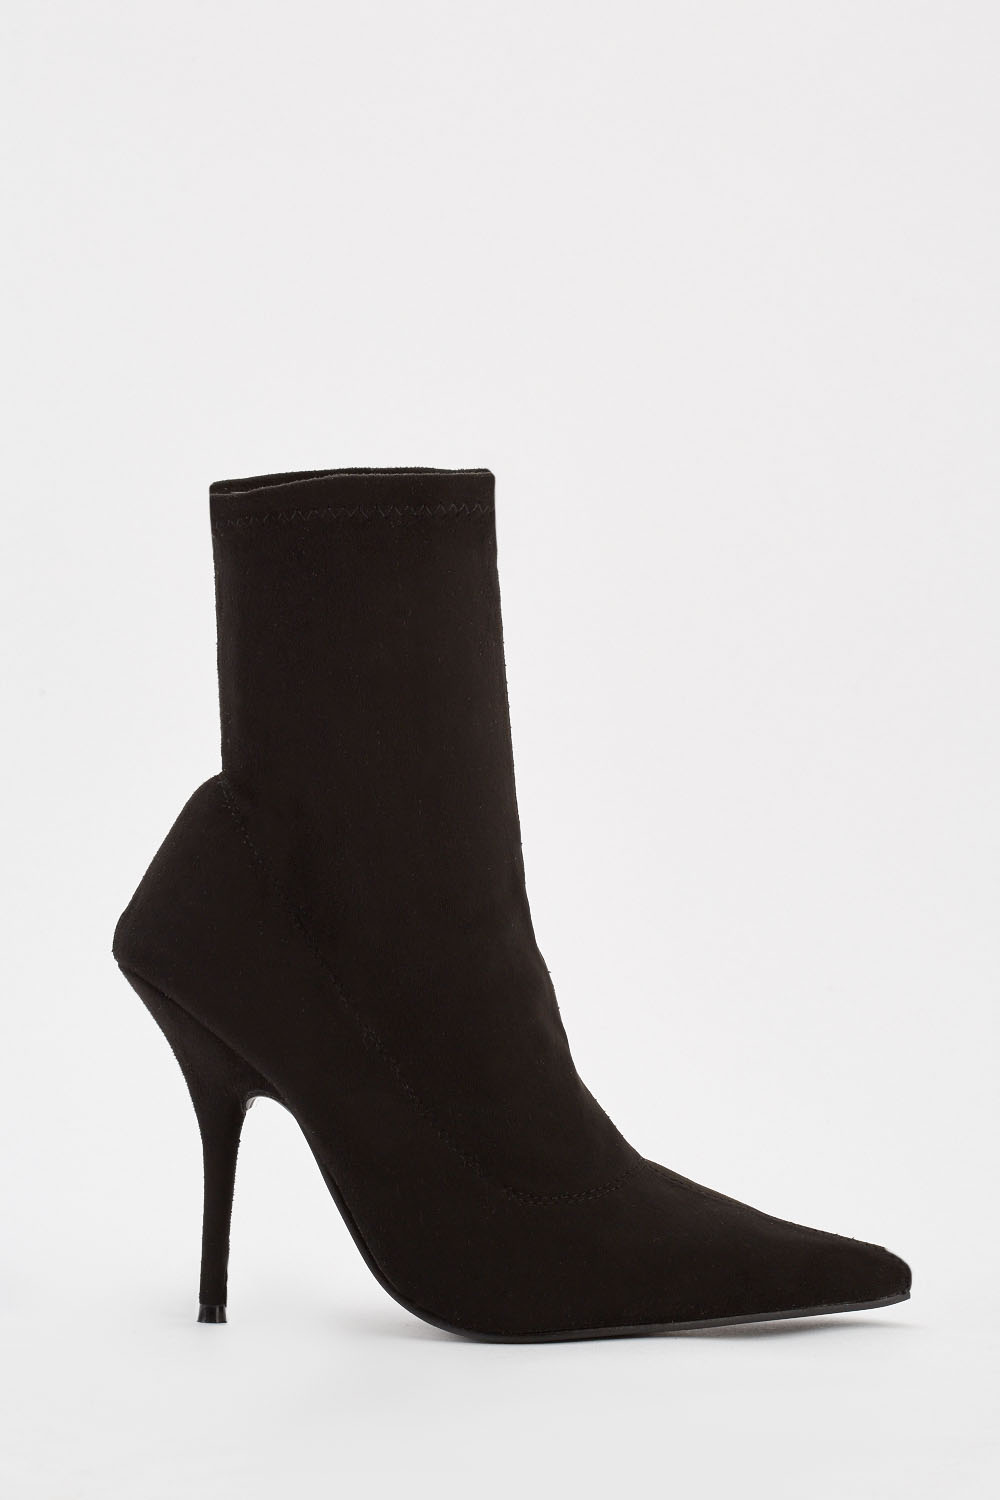 Suedette Pencil Heel Ankle Boots Just $6